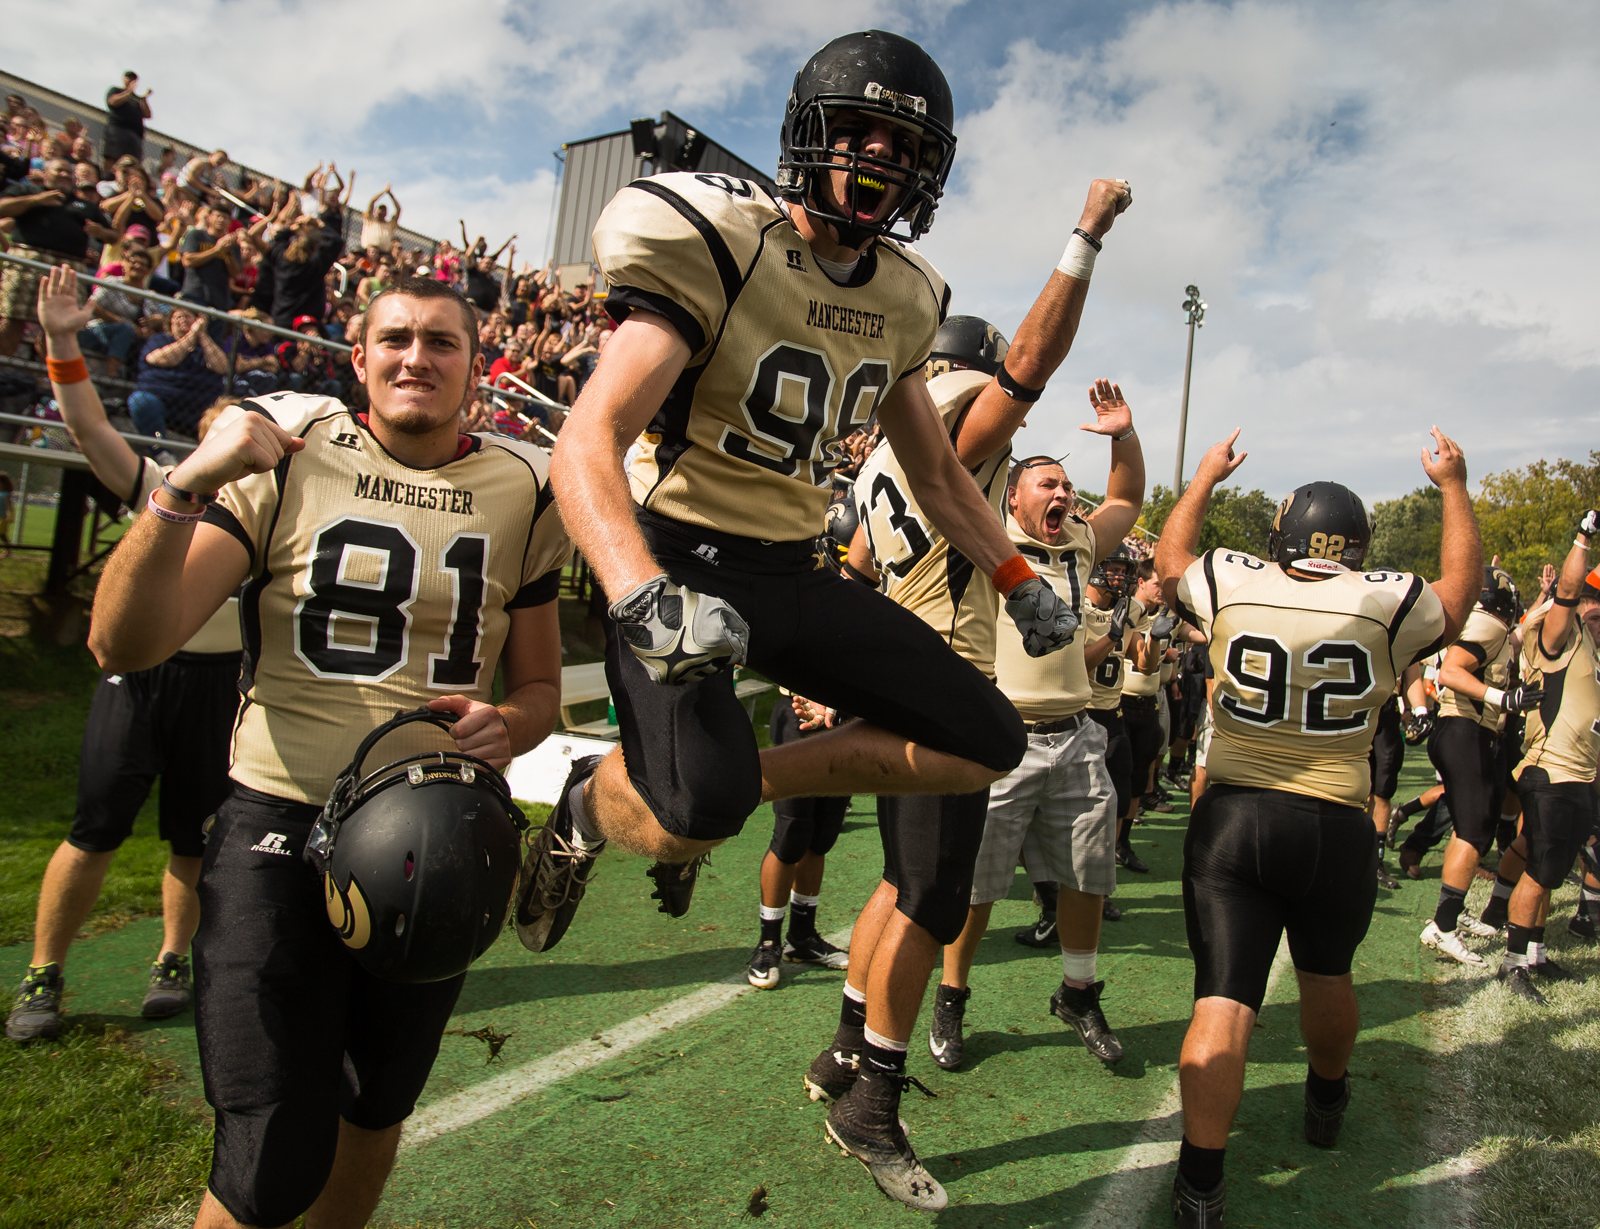 Manchester University Defeated Bluffton University 34 7 At The Homecoming Game Manchester Homecoming Games Athlete